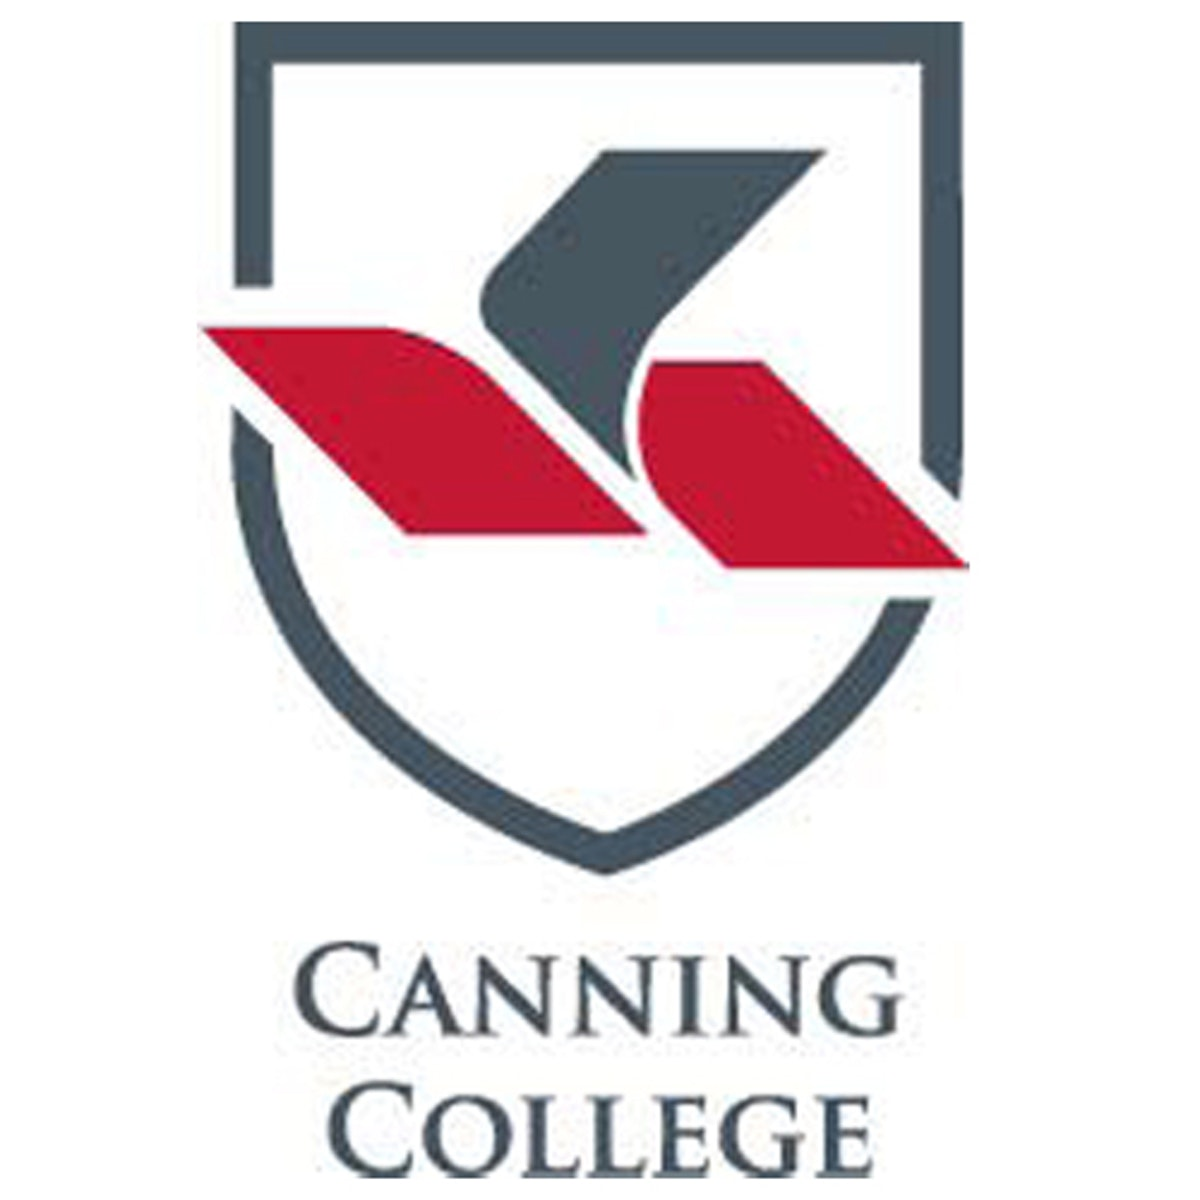 Canning College Vertical 500px